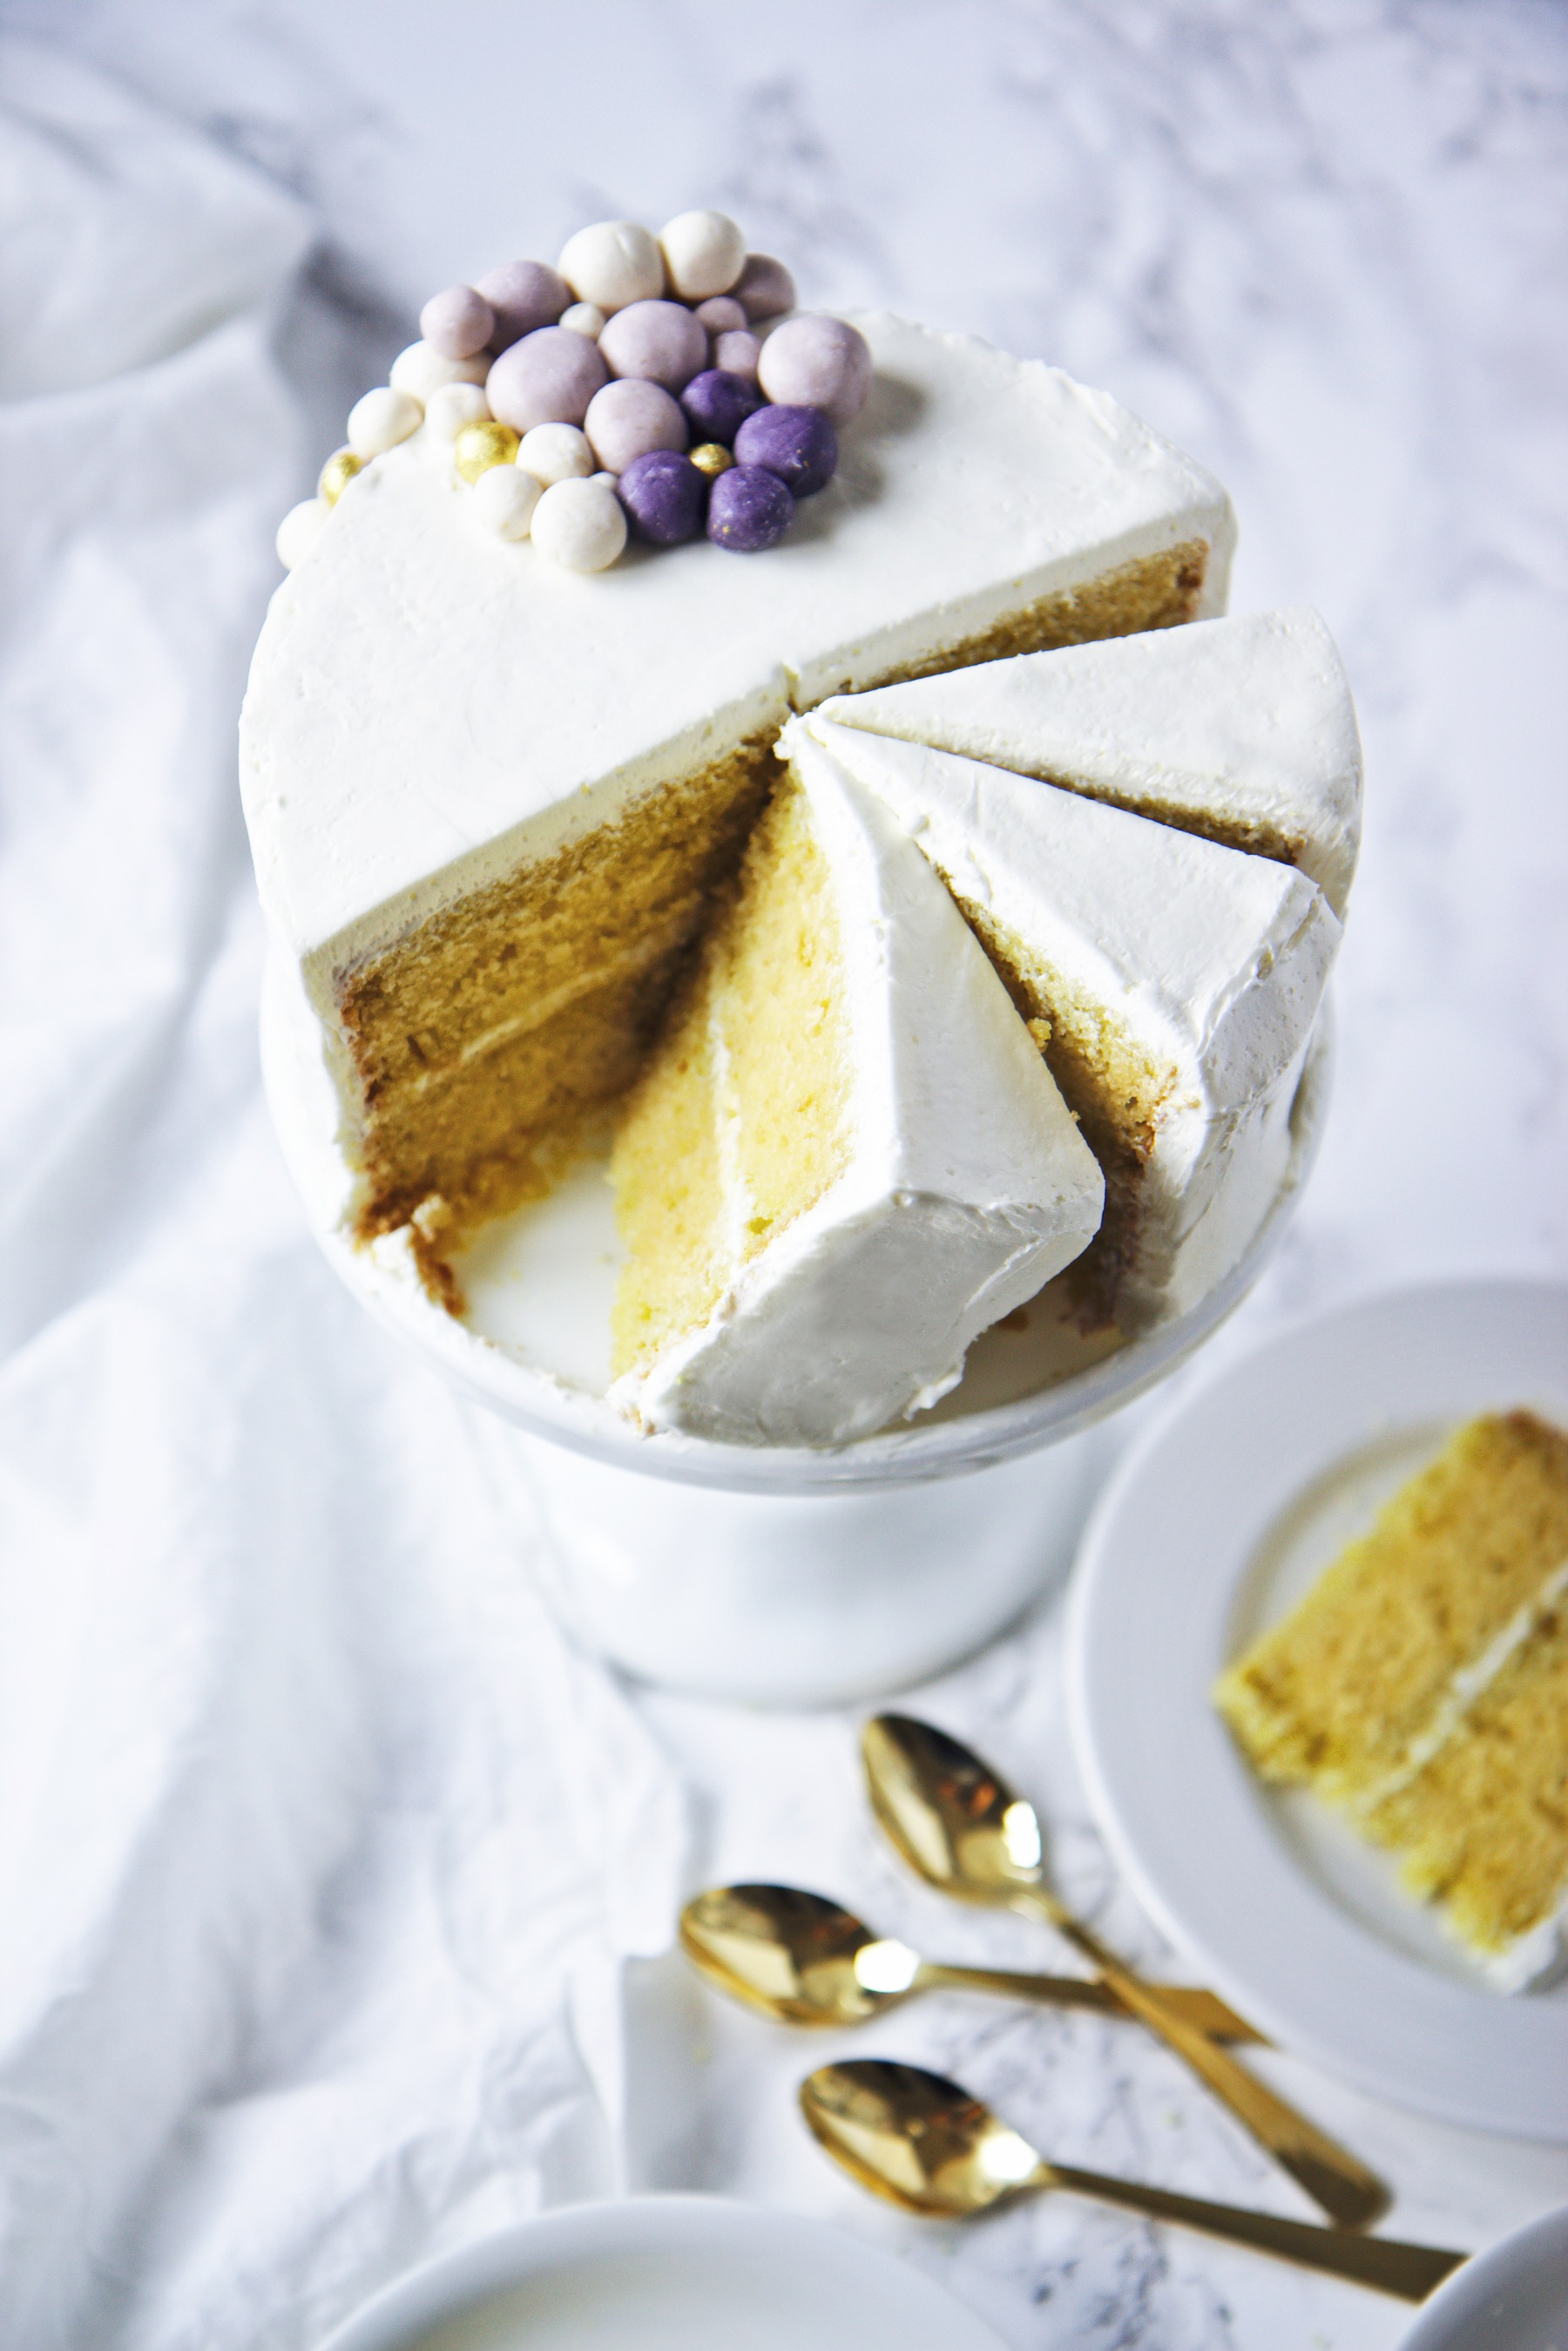 Lemon and Almond Cake | La Pêche Fraîche